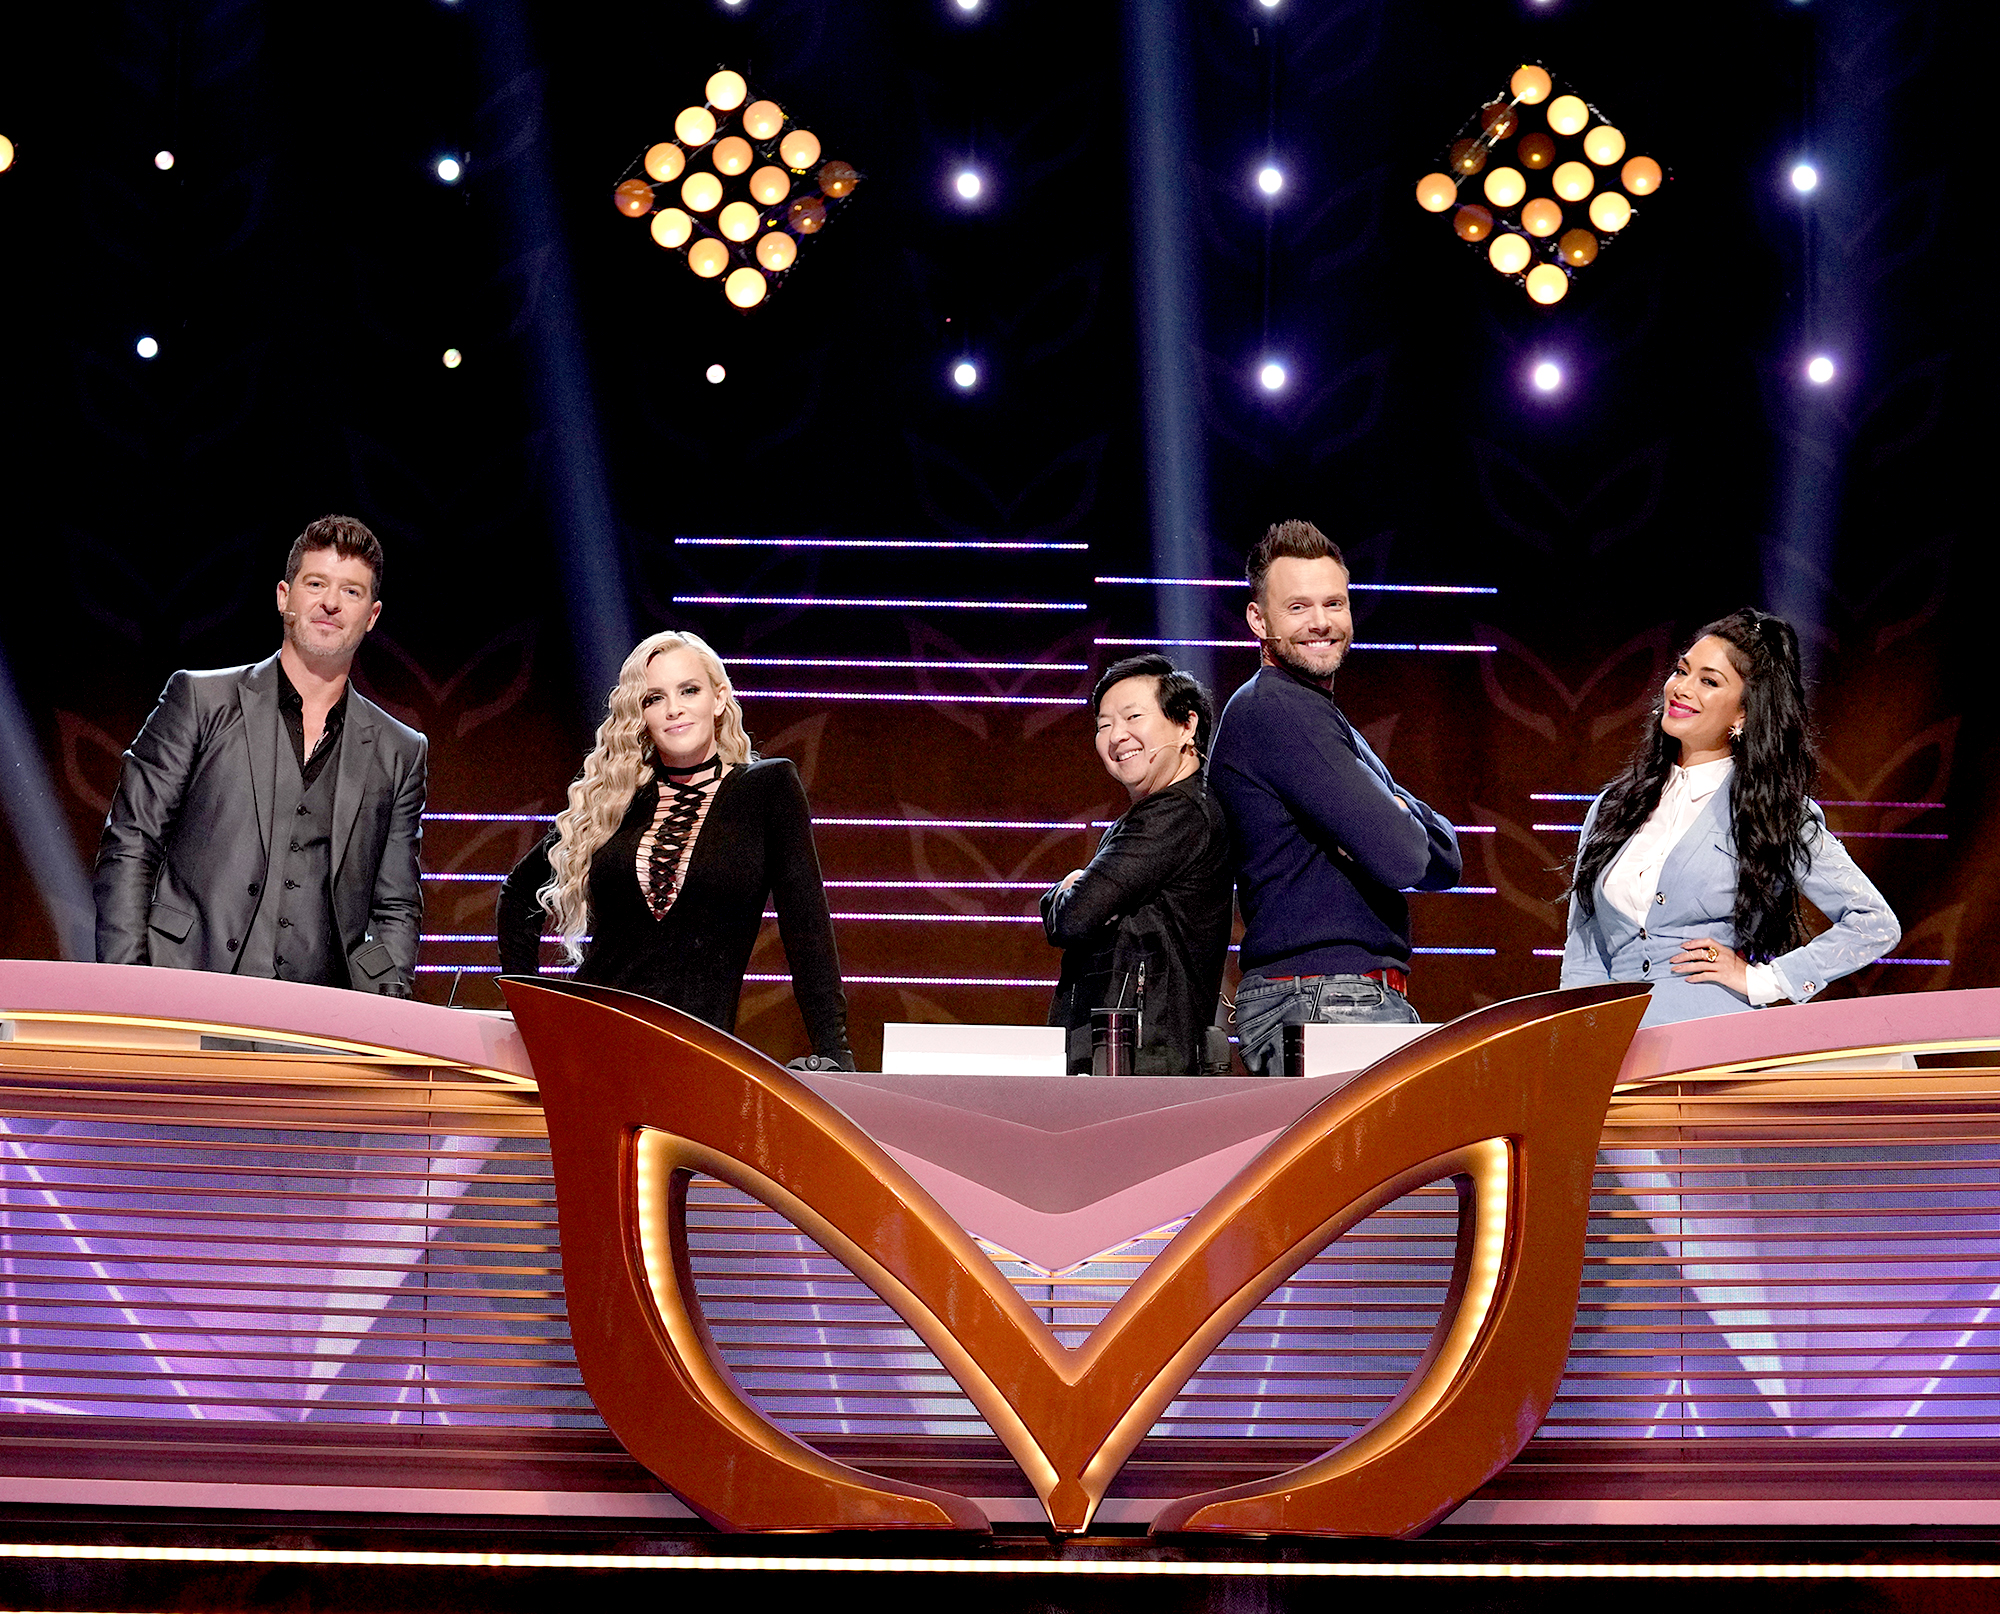 """the-masked-singer-judges-joel - THE MASKED SINGER: L-R: Panelists: Robin Thicke, Jenny McCarthy, Ken Jeong, guest panelist Joe McHale and panelist Nicole Scherzinger in the all-new """"Five Masks No More"""" episode of THE MASKED SINGER airing Wednesday, Jan. 16 (9:00-10:00 PM ET/PT) on FOX. © 2019 FOX Broadcasting."""